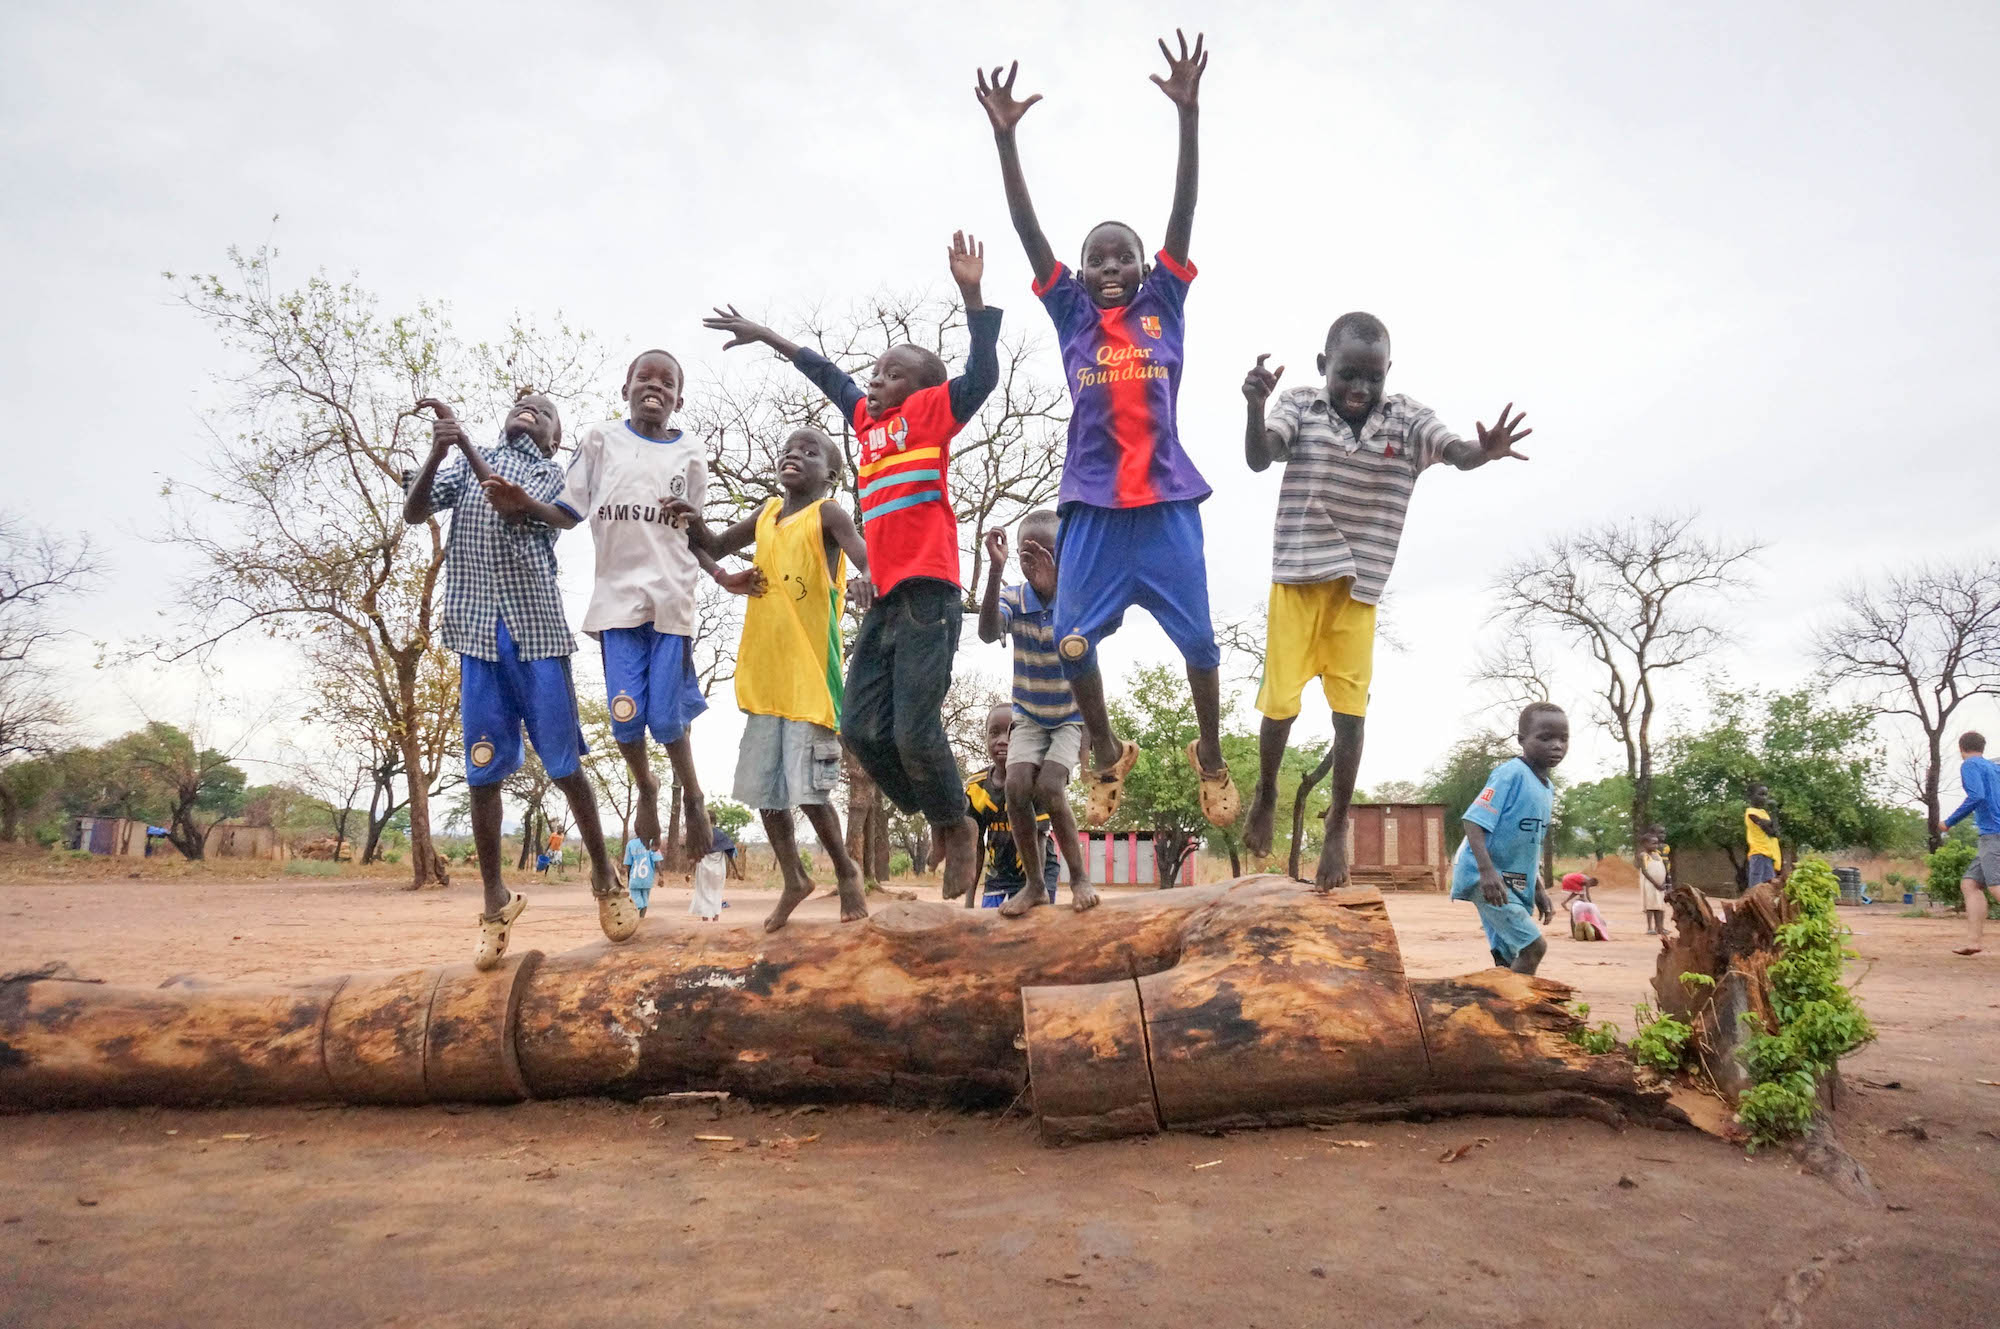 LiftuptheVulnerable-children-sudan-southsudan-groupofboys.jpg